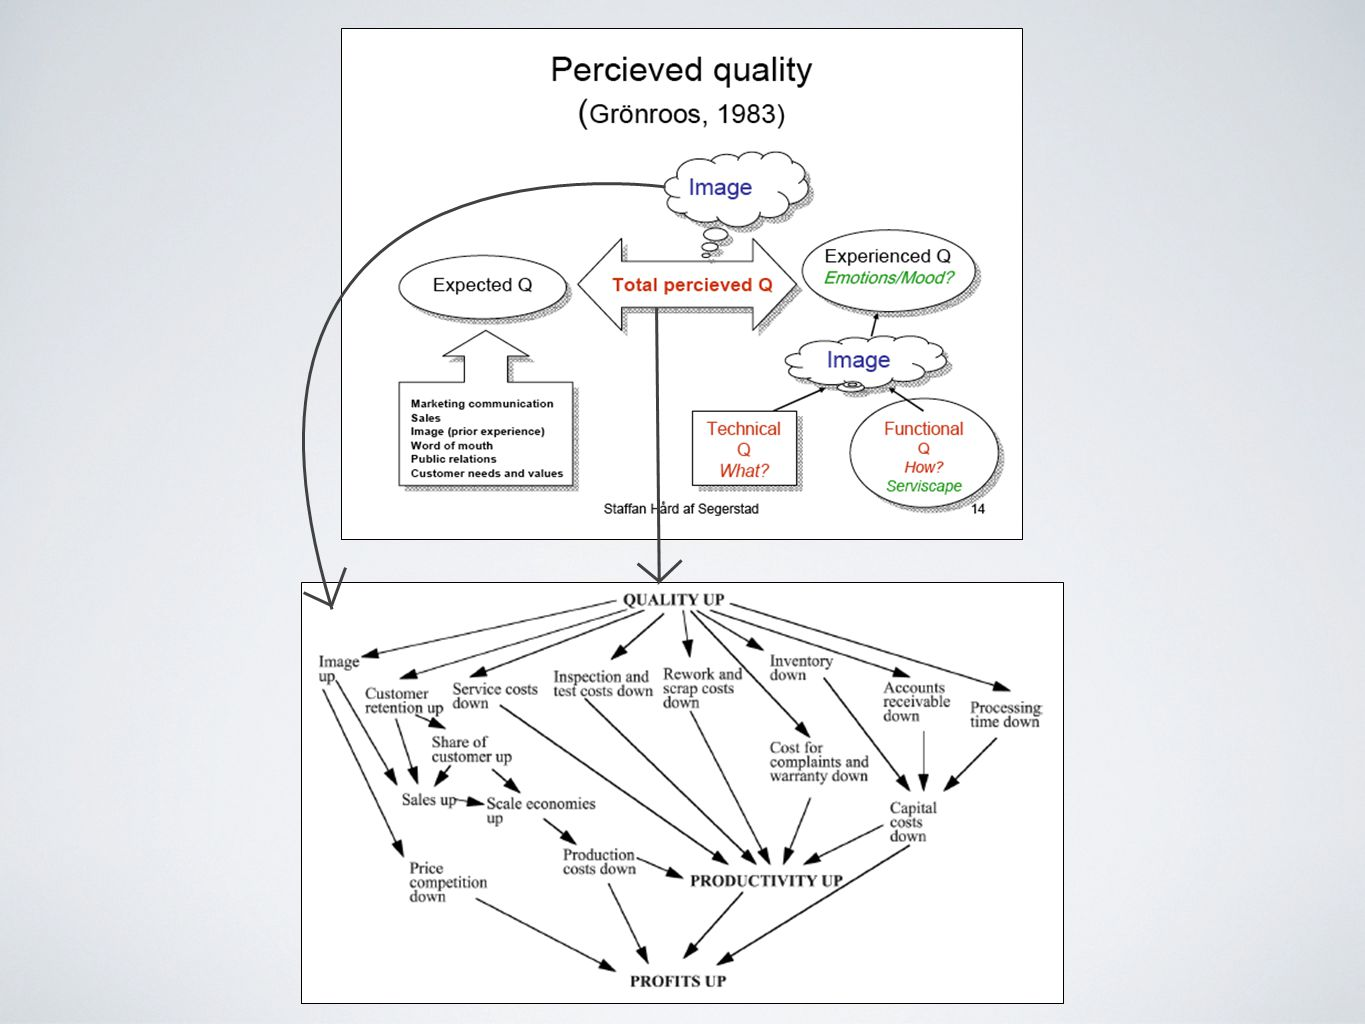 A manufacturer who adheres to Porter's (1985) value chain, which is a supplier value chain stopping when the customer enters, will put too much psychic distance between itself and the customer [I] recommend that we switch from linear thinking to non-linear and network thinking Värdekedjan